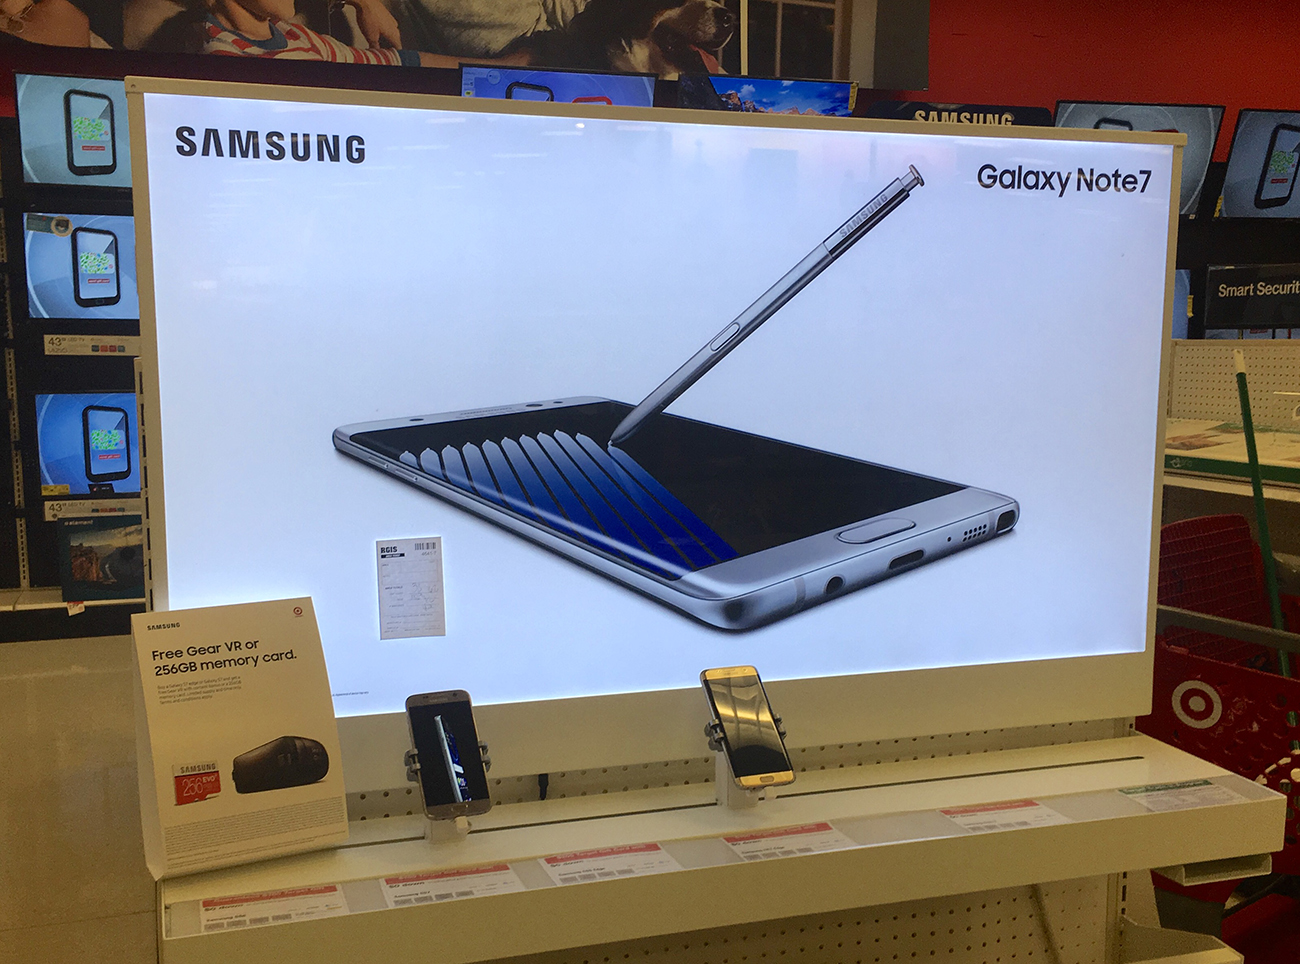 A photograph shows a large display of the Samsung Galaxy note smart phone, with a stylus pen touching the screen.